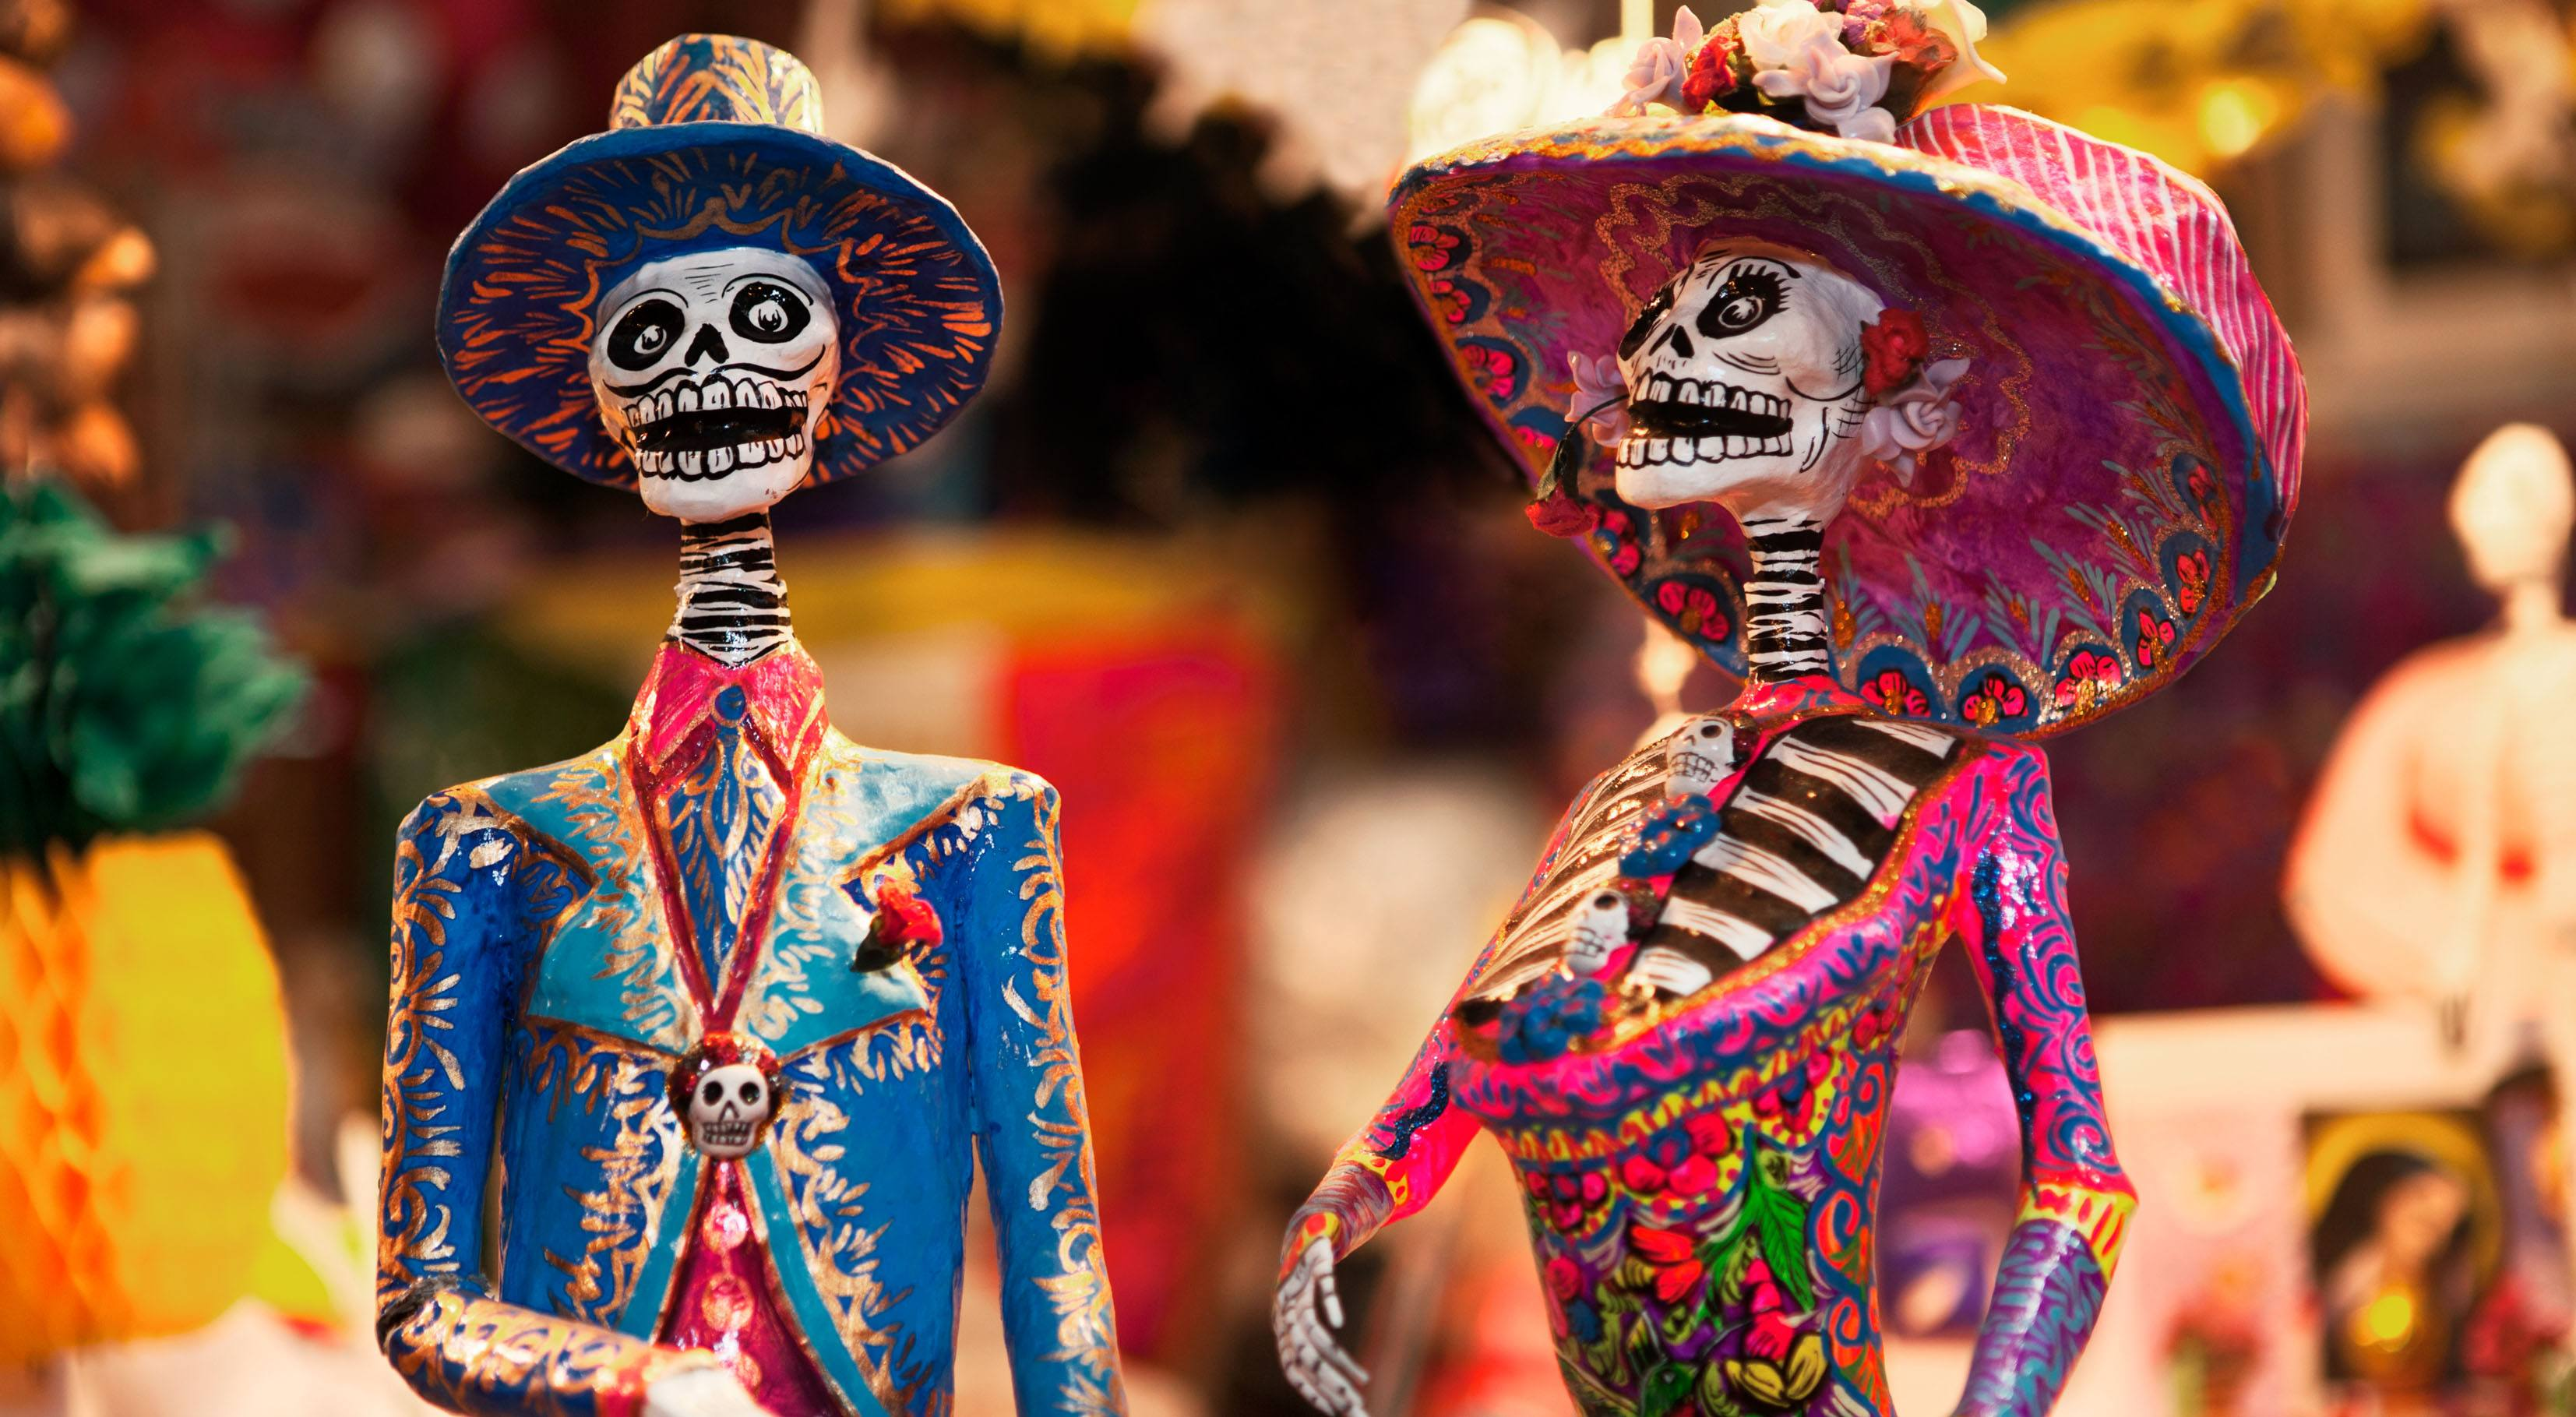 72 hours in Mexico: celebrations and spectres at the Day of the Dead parade